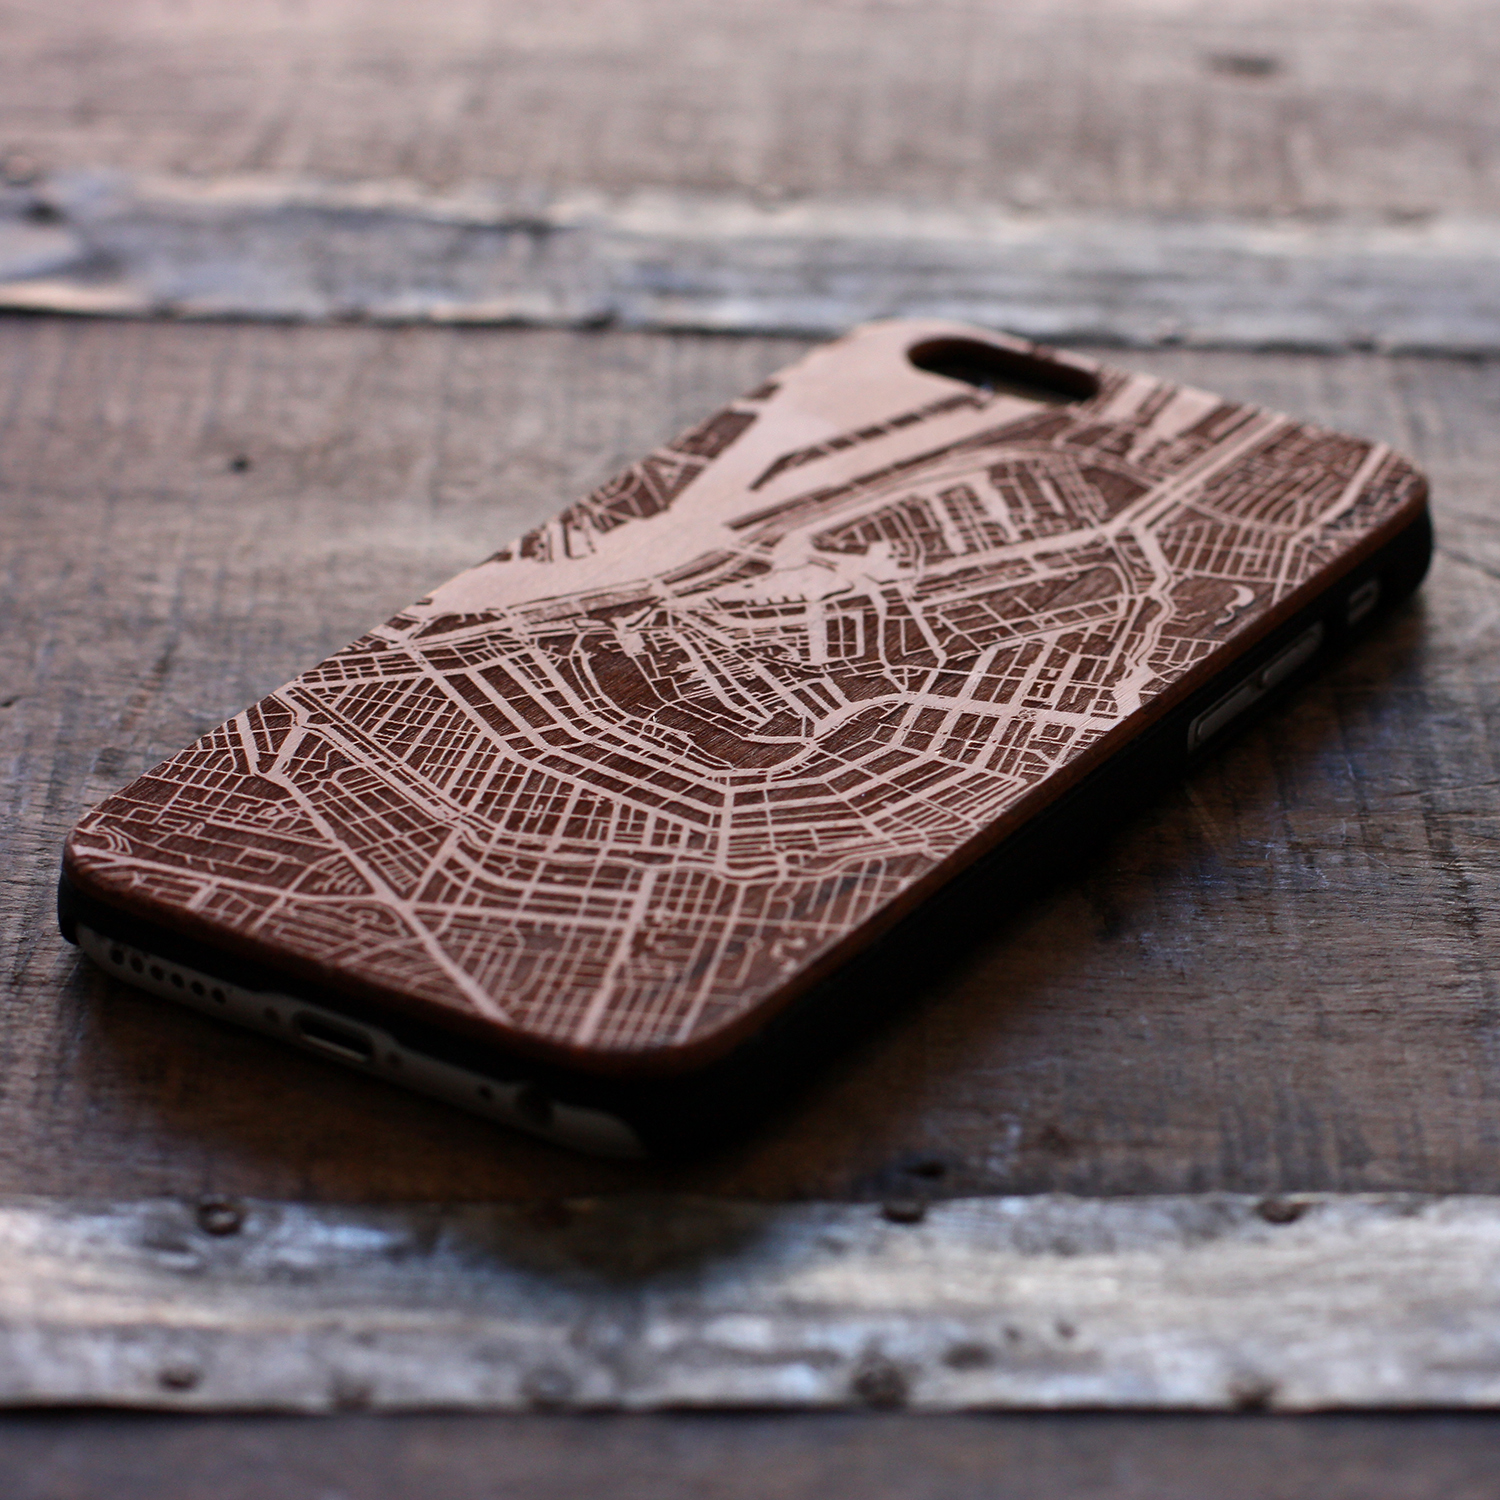 laser engraving on a phone case by Local Makers